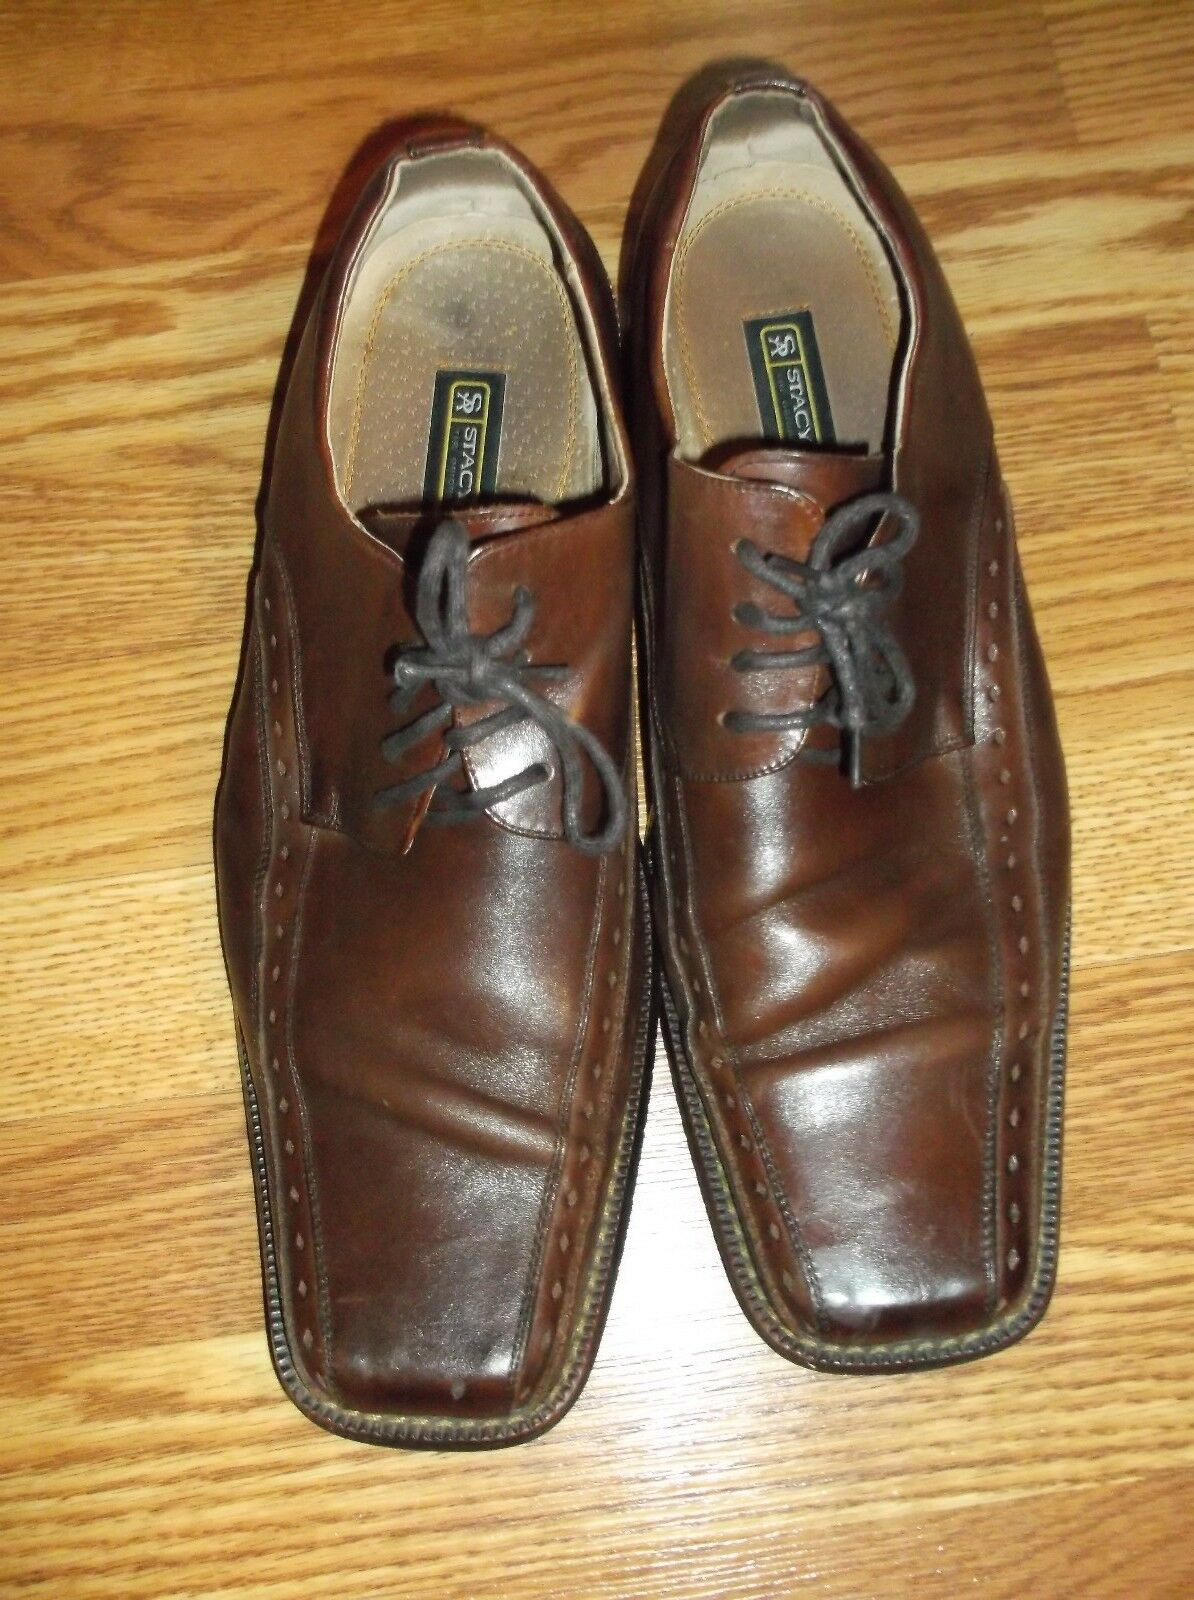 MEN'S STACY ADAMS BROWN LACE UP LEATHER SHOES SIZE 12 M